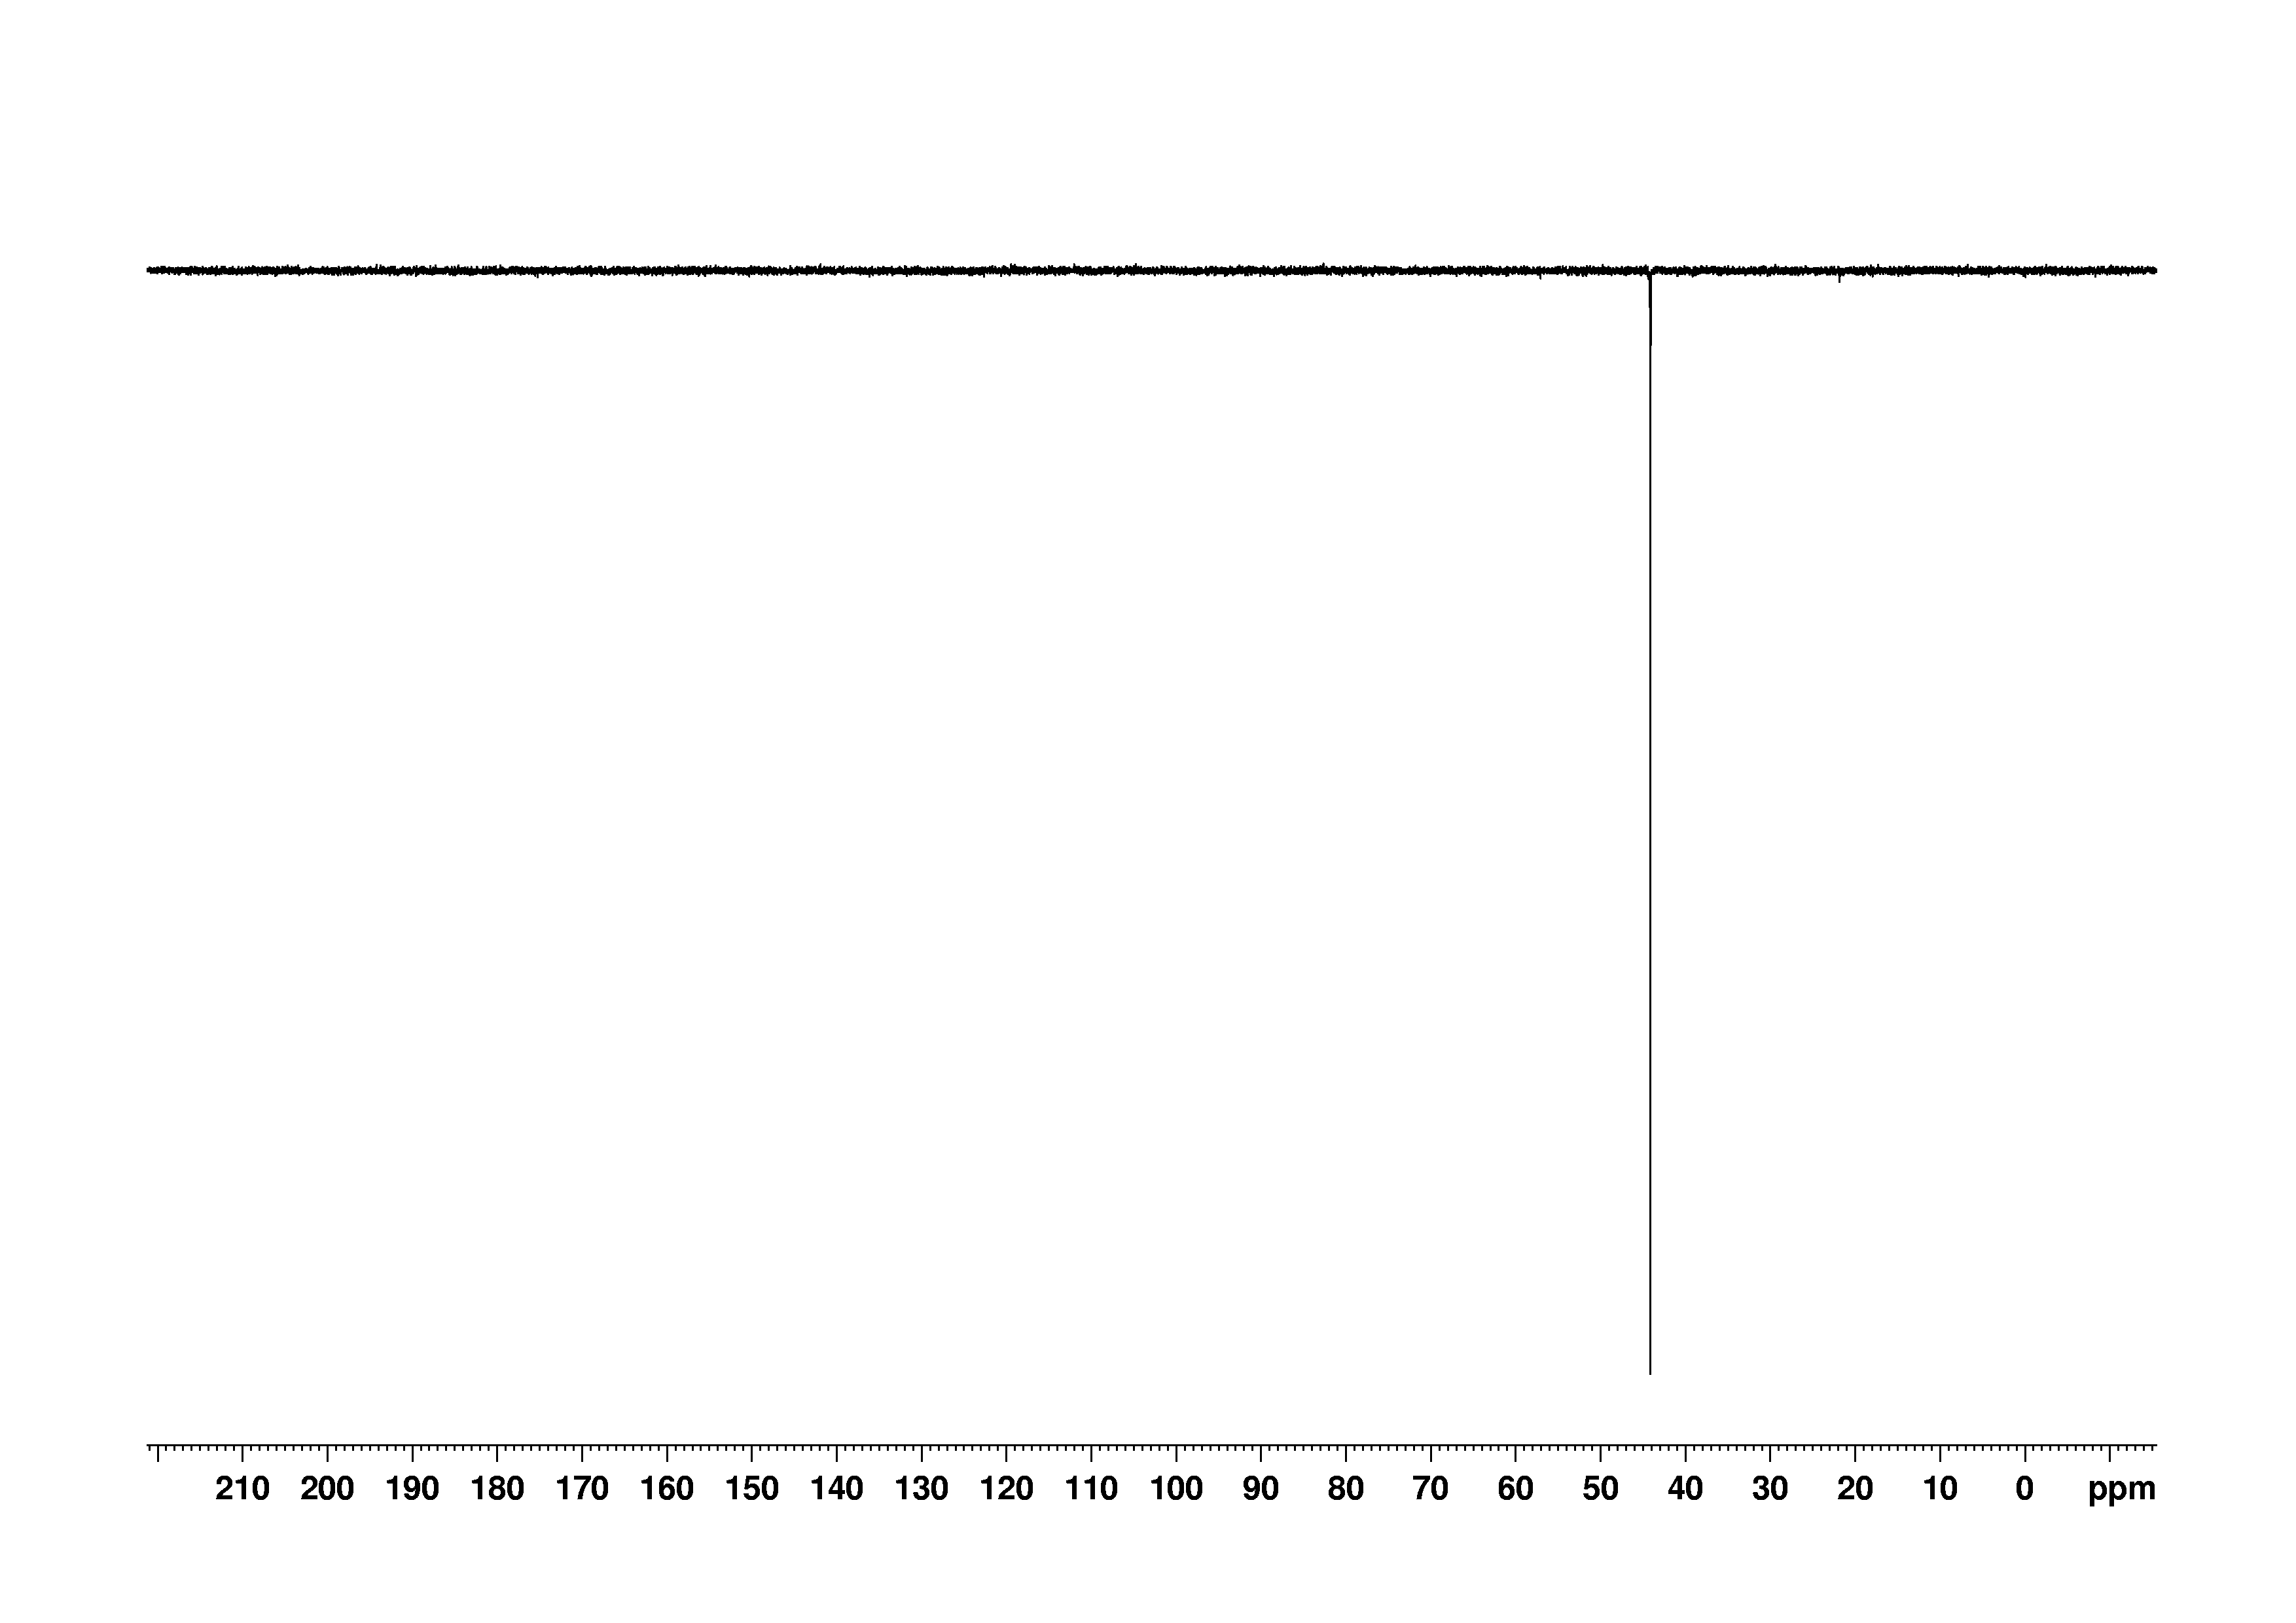 1D DEPT135, 7.4 spectrum for Glycine